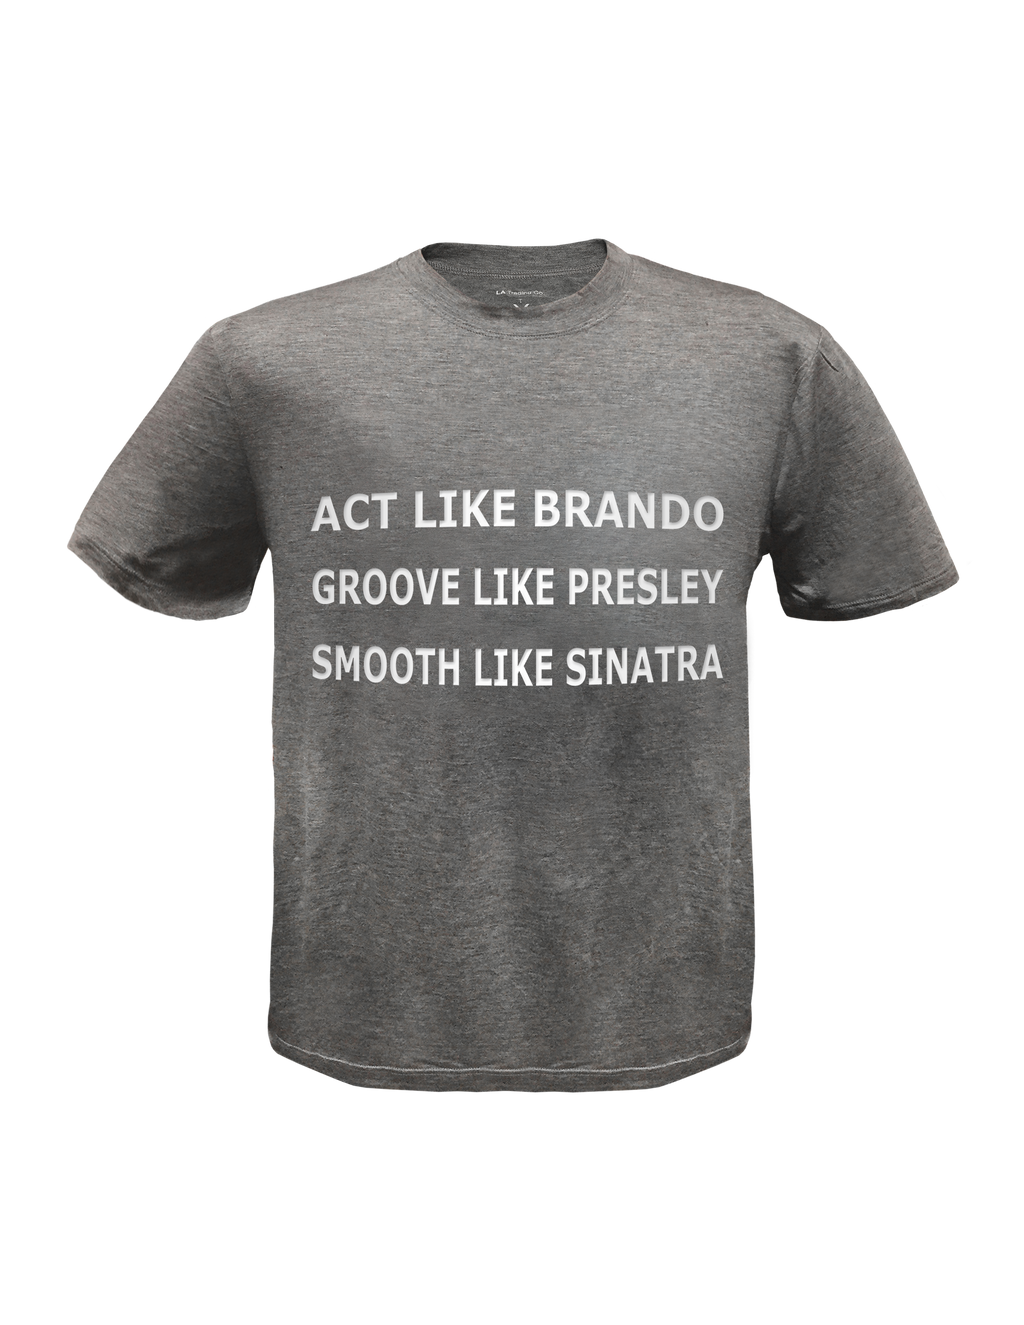 Men's Tee- Act like Brando